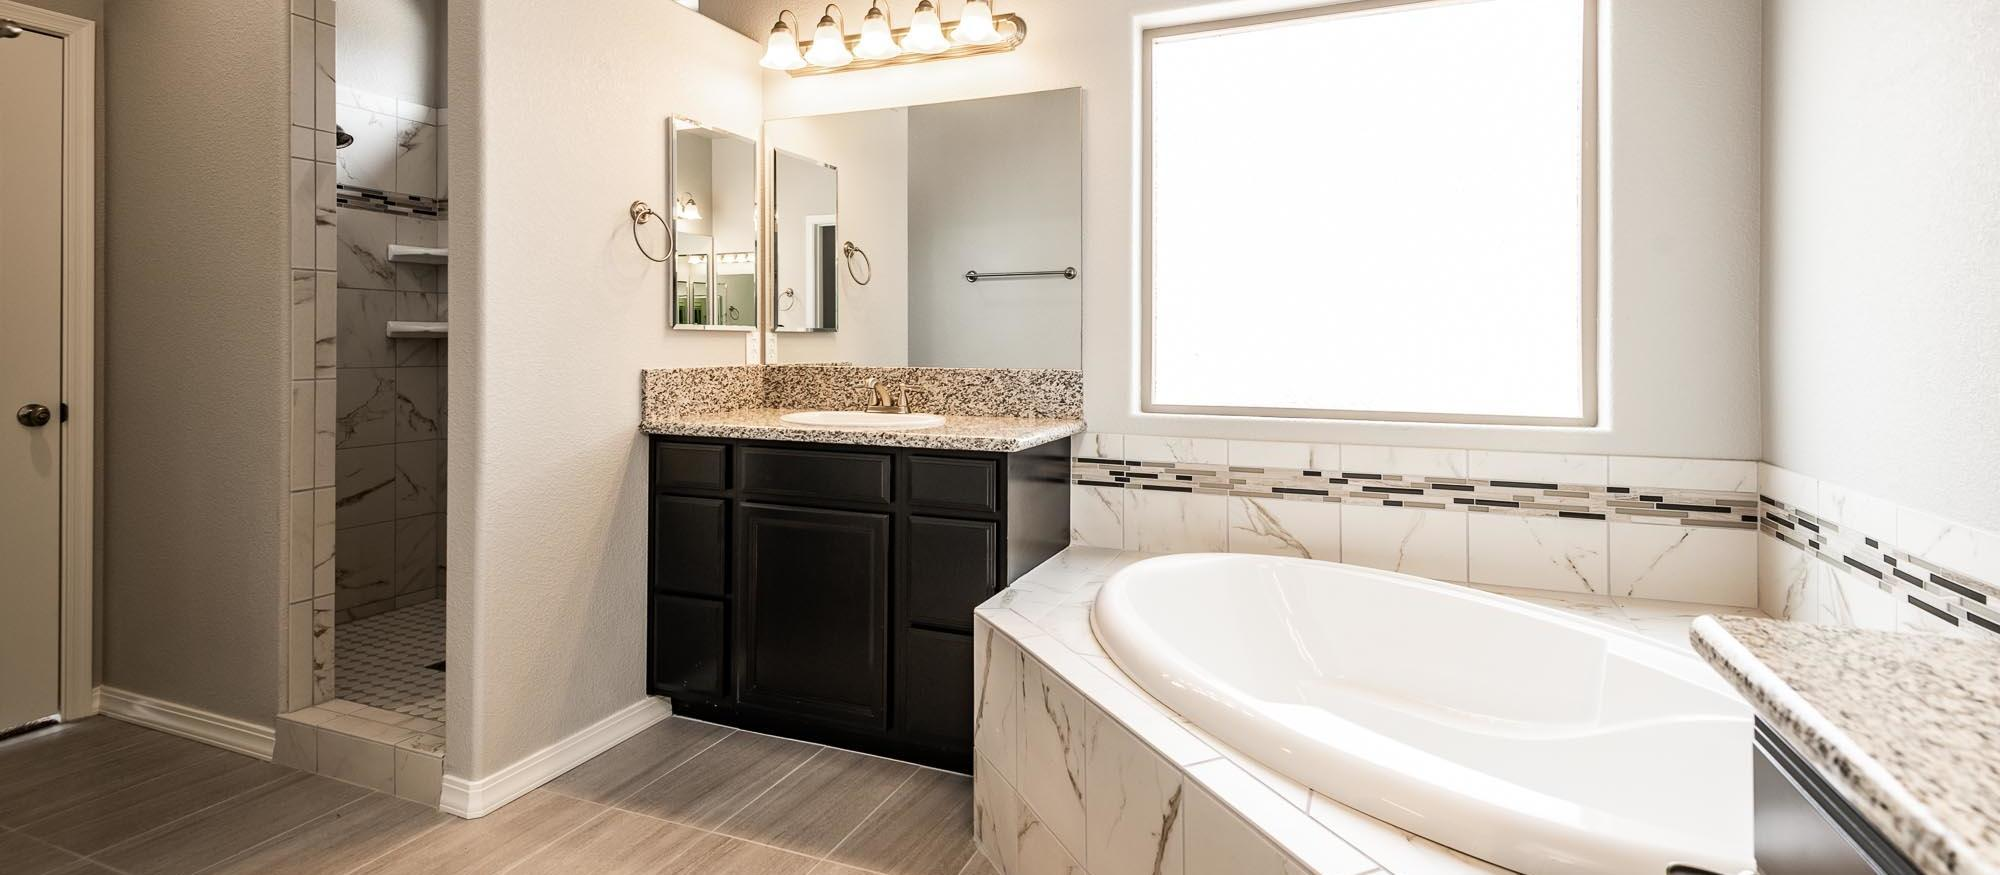 Bathroom featured in the Legacy 2374 By Angle Homes in Kingman-Lake Havasu City, AZ